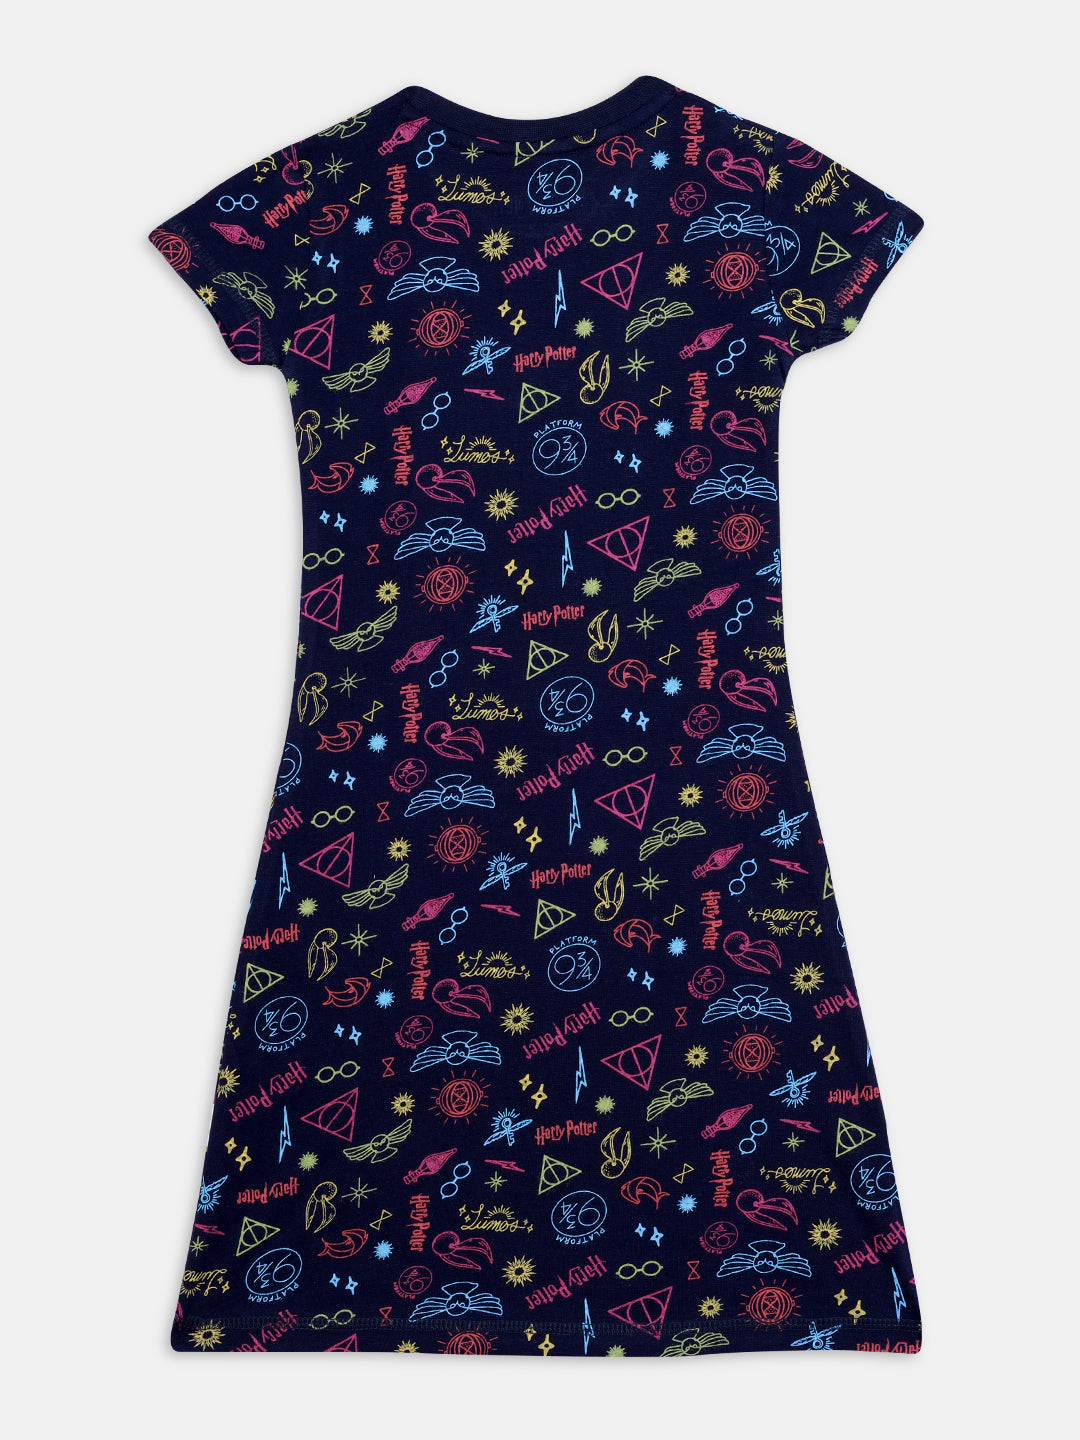 harry potter neon magic nap chief girls 100% organic cotton relaxed fit night wear